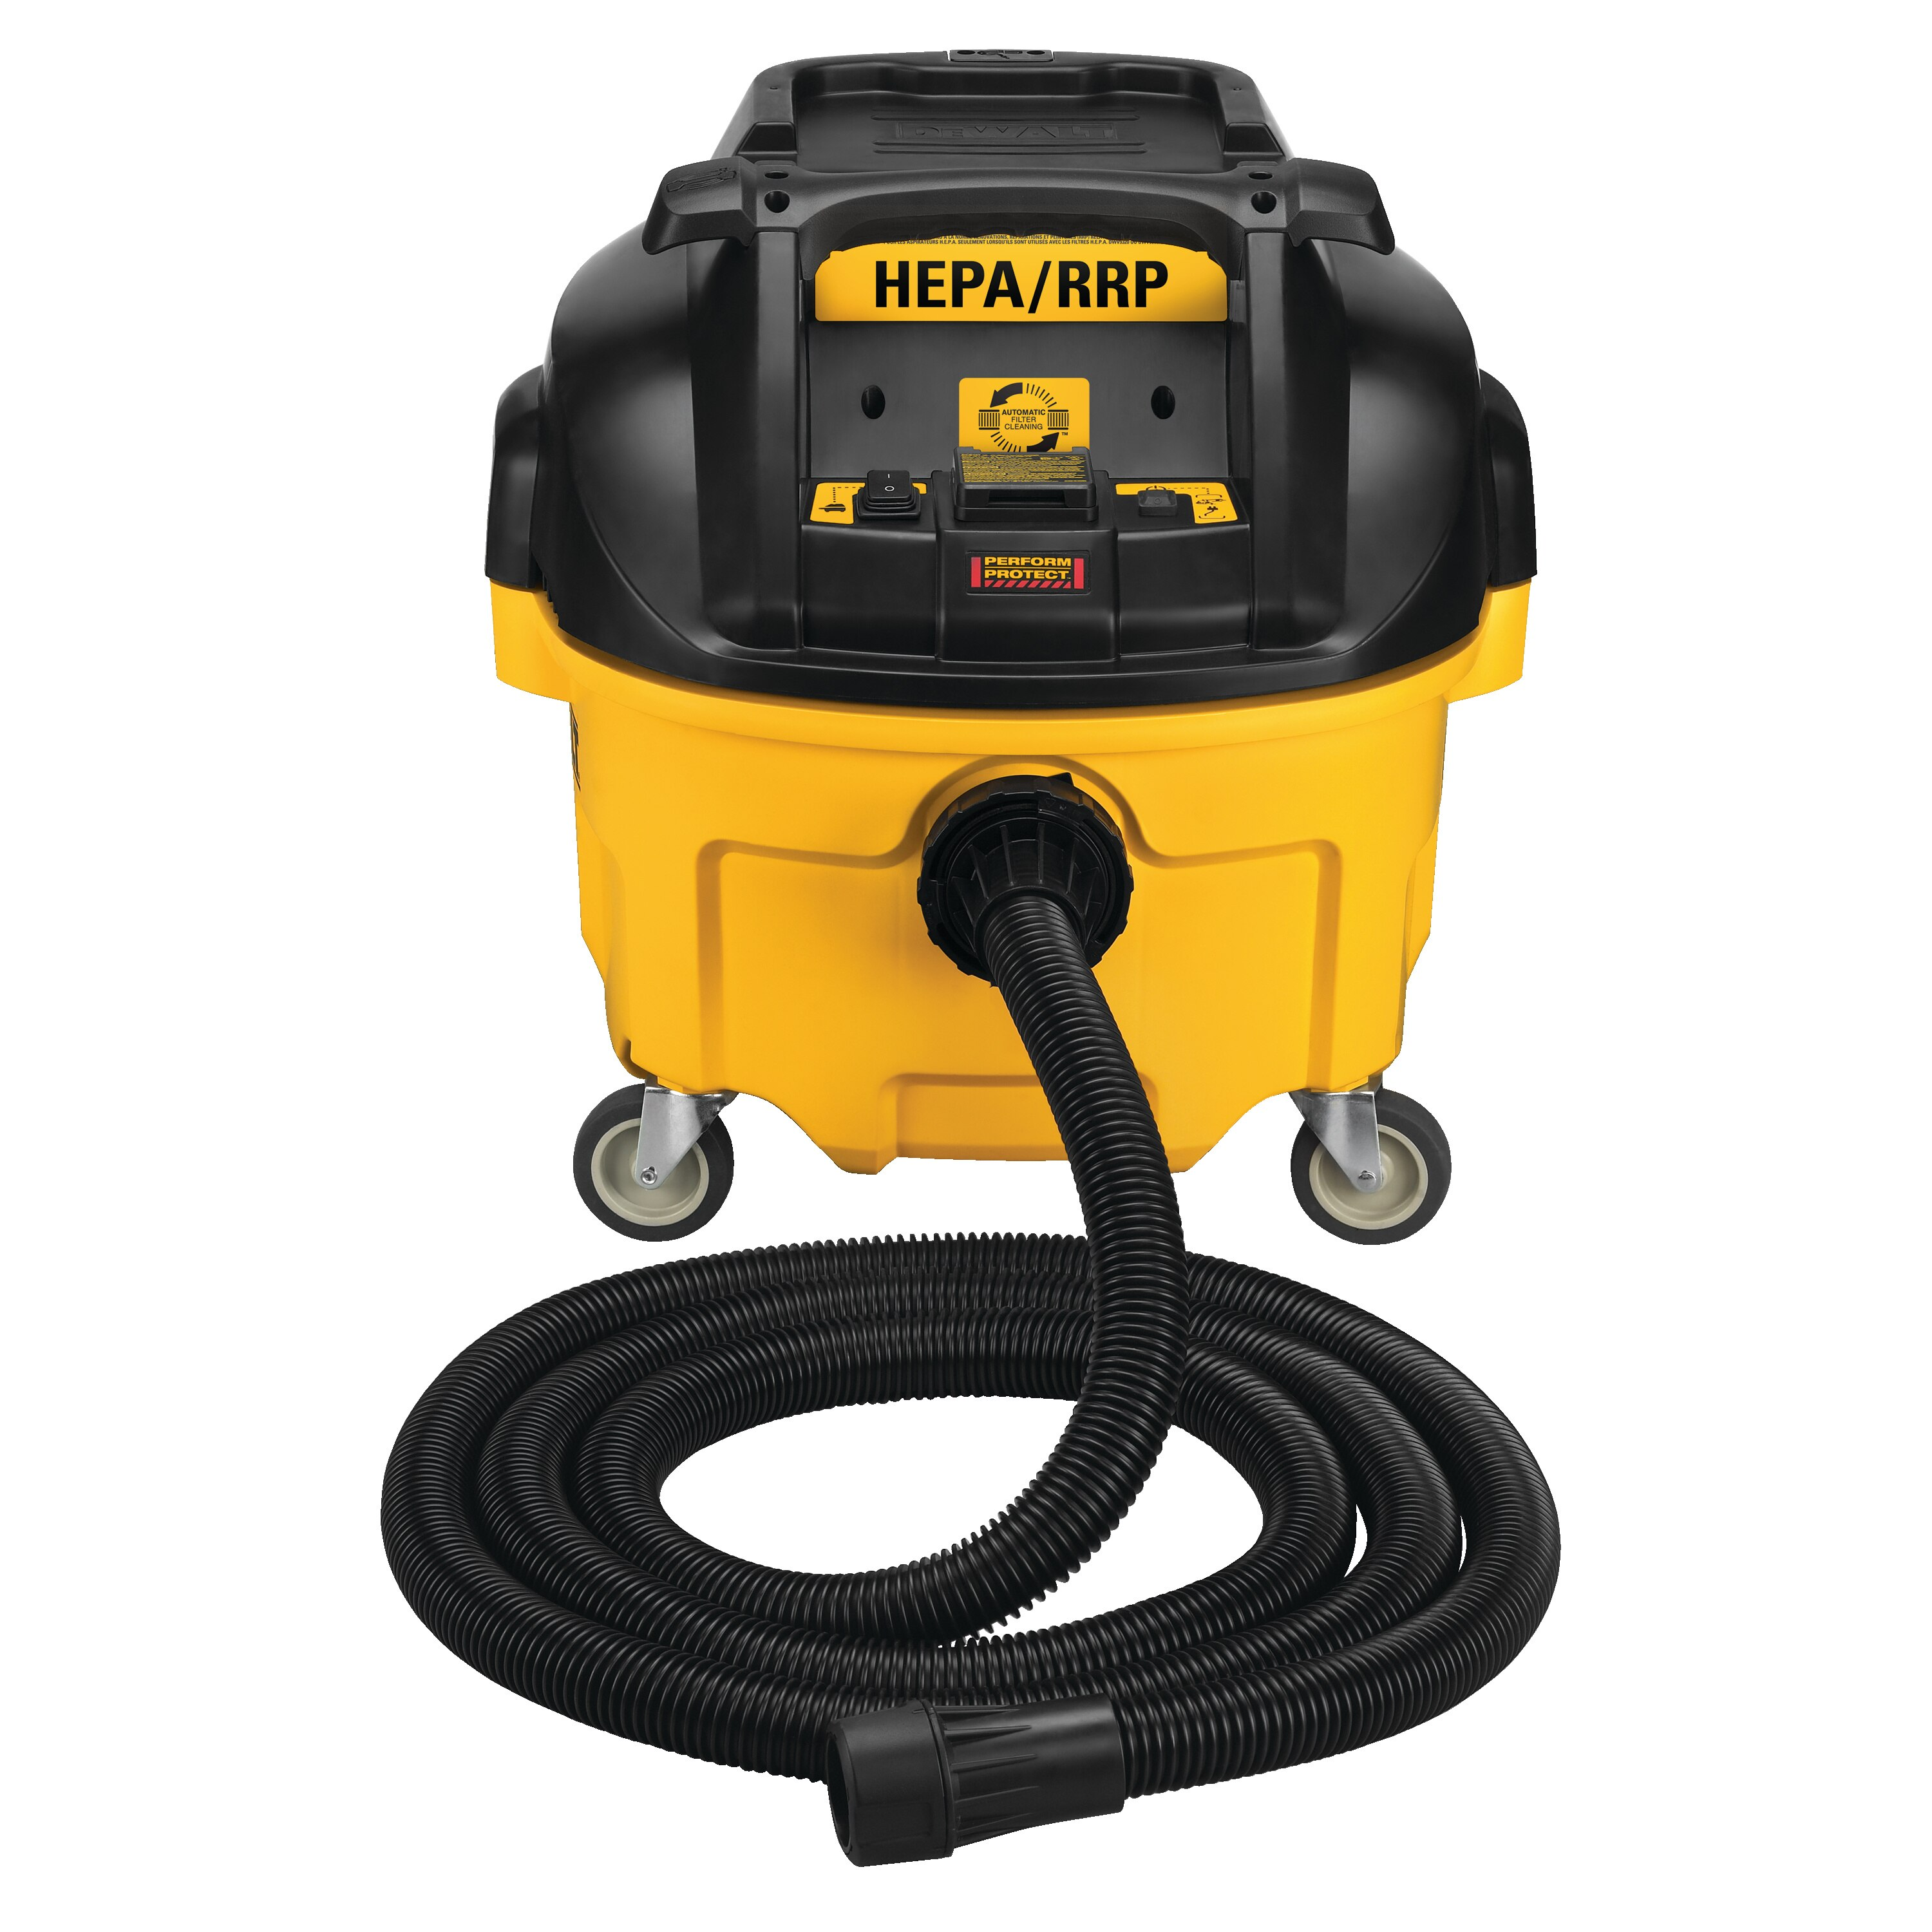 Dewalt Dust Extractor >> 8 Gallon Wet Dry Hepa Rrp Dust Extractor